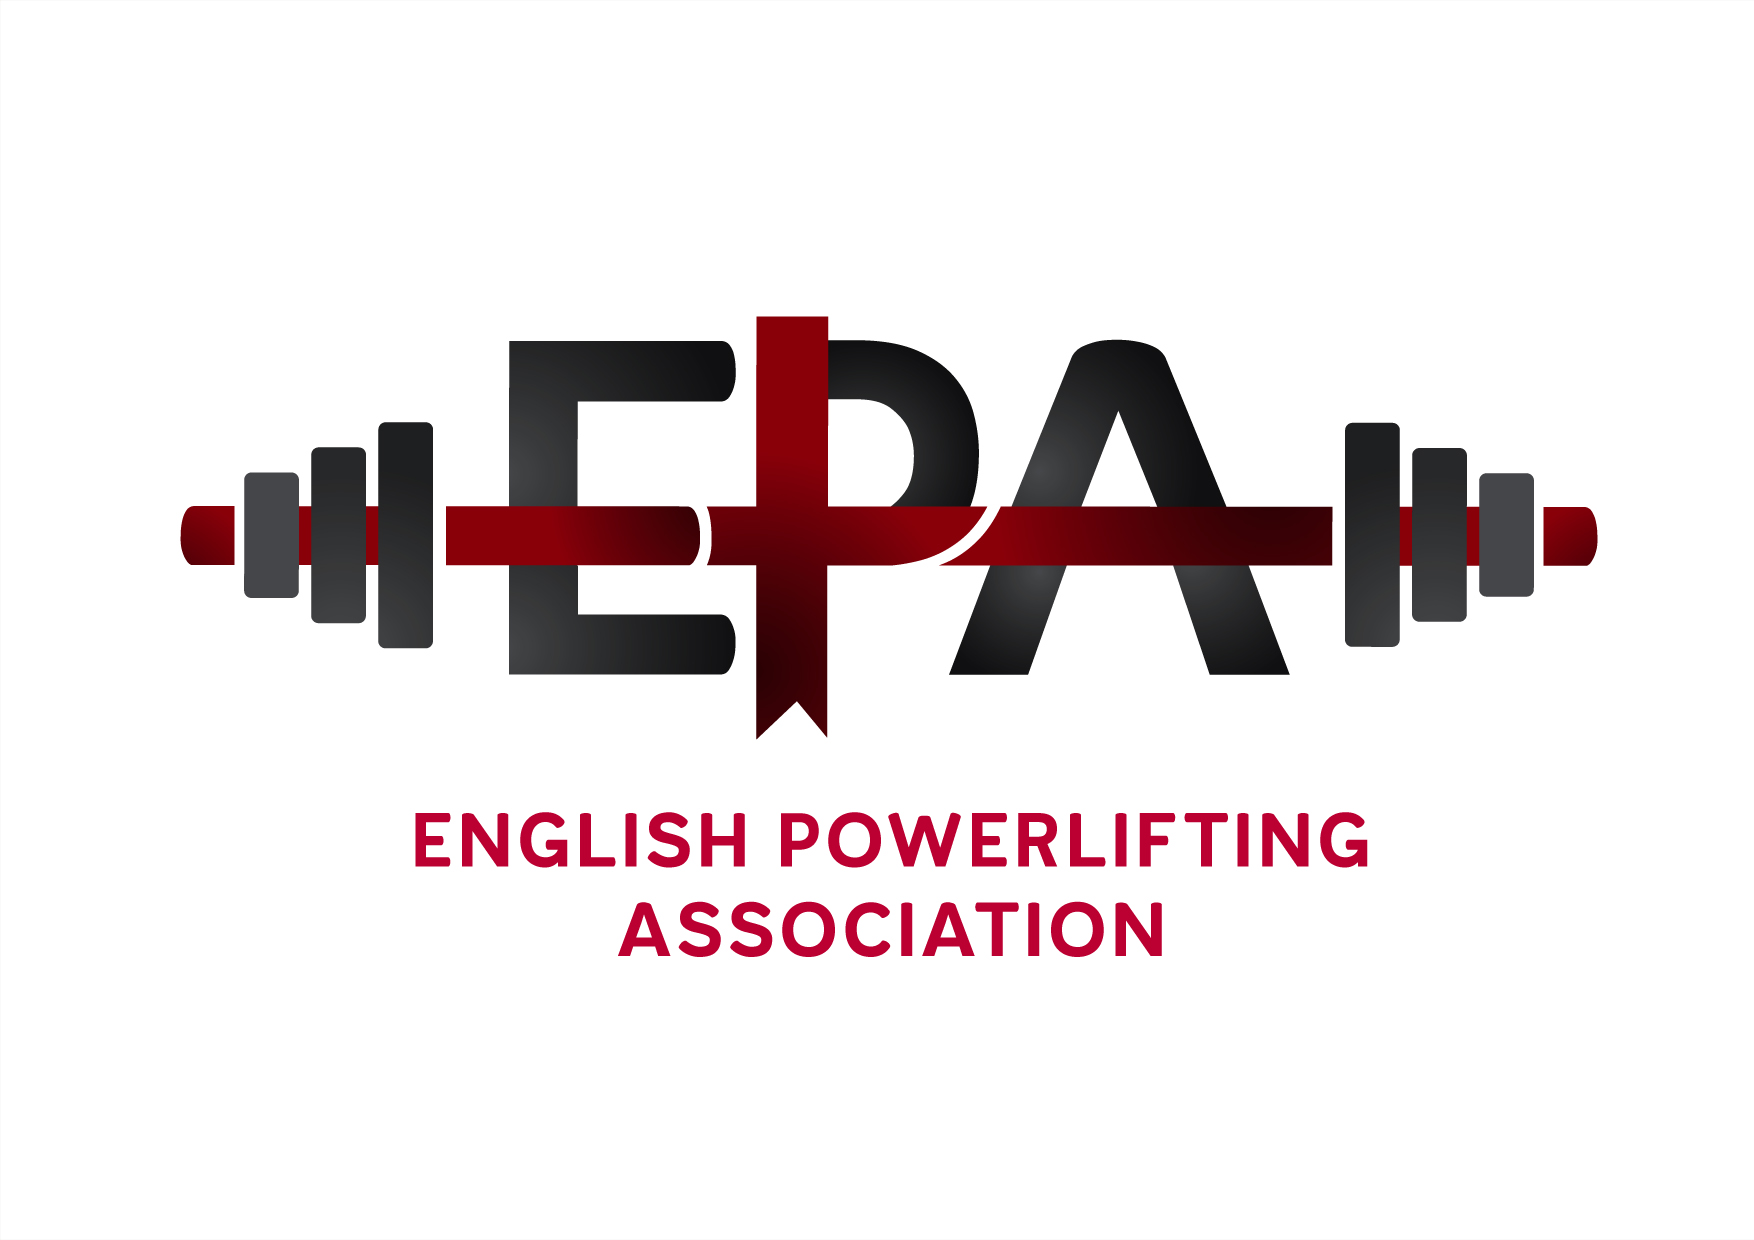 English Powerlifting Association